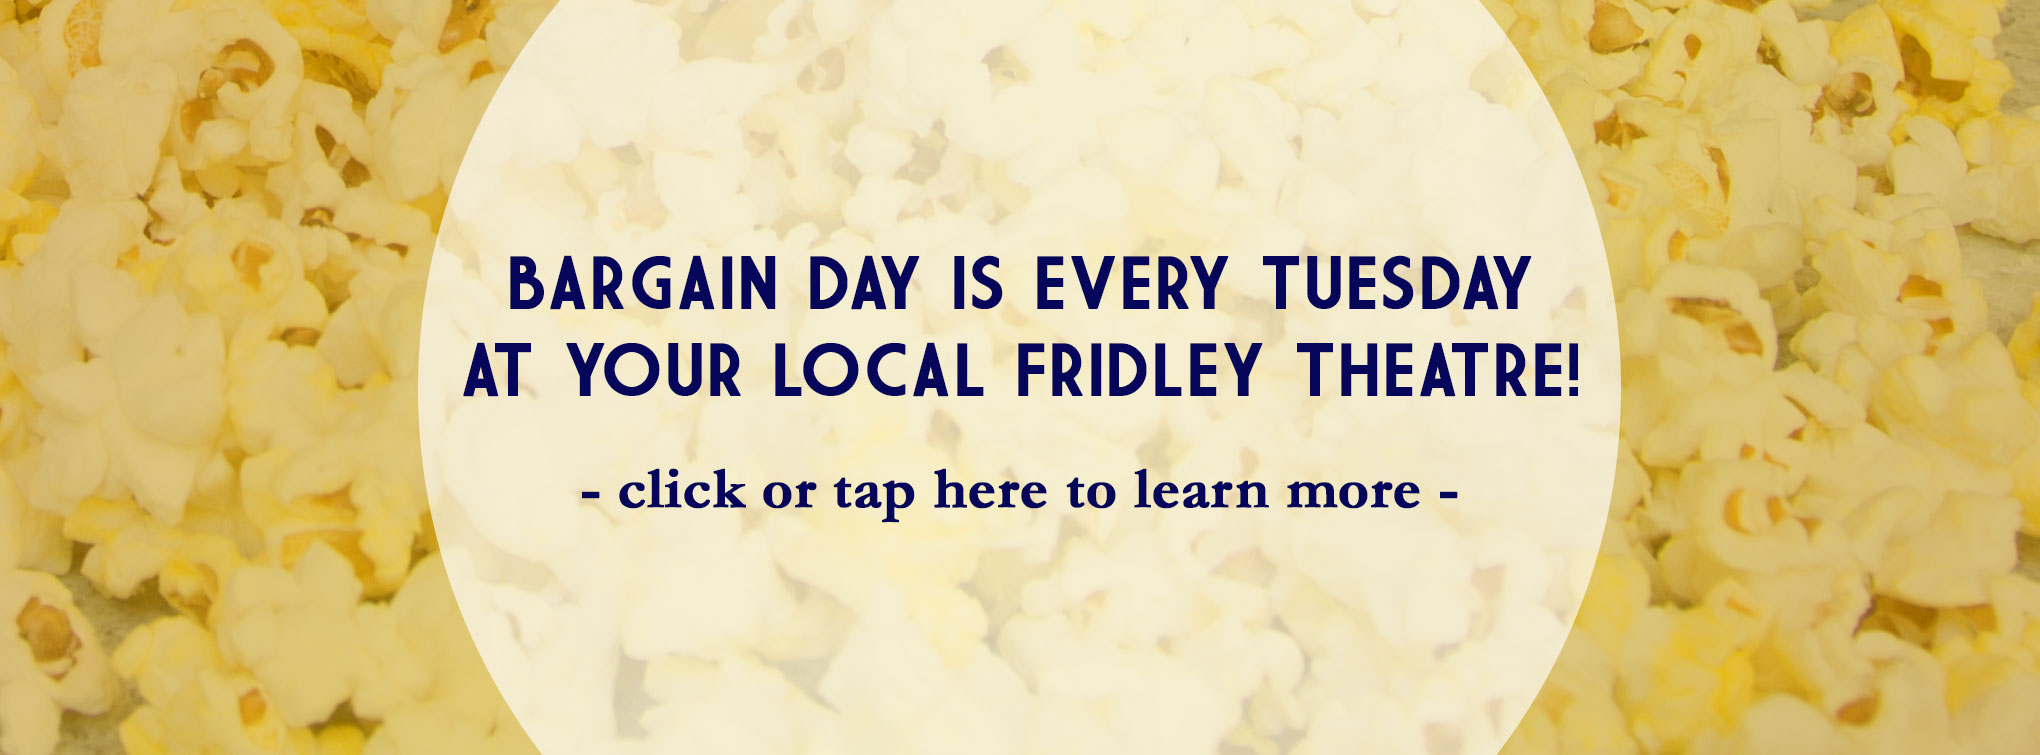 Bargain Day every Tuesday at your local Fridley Theatre! Click here for more information.